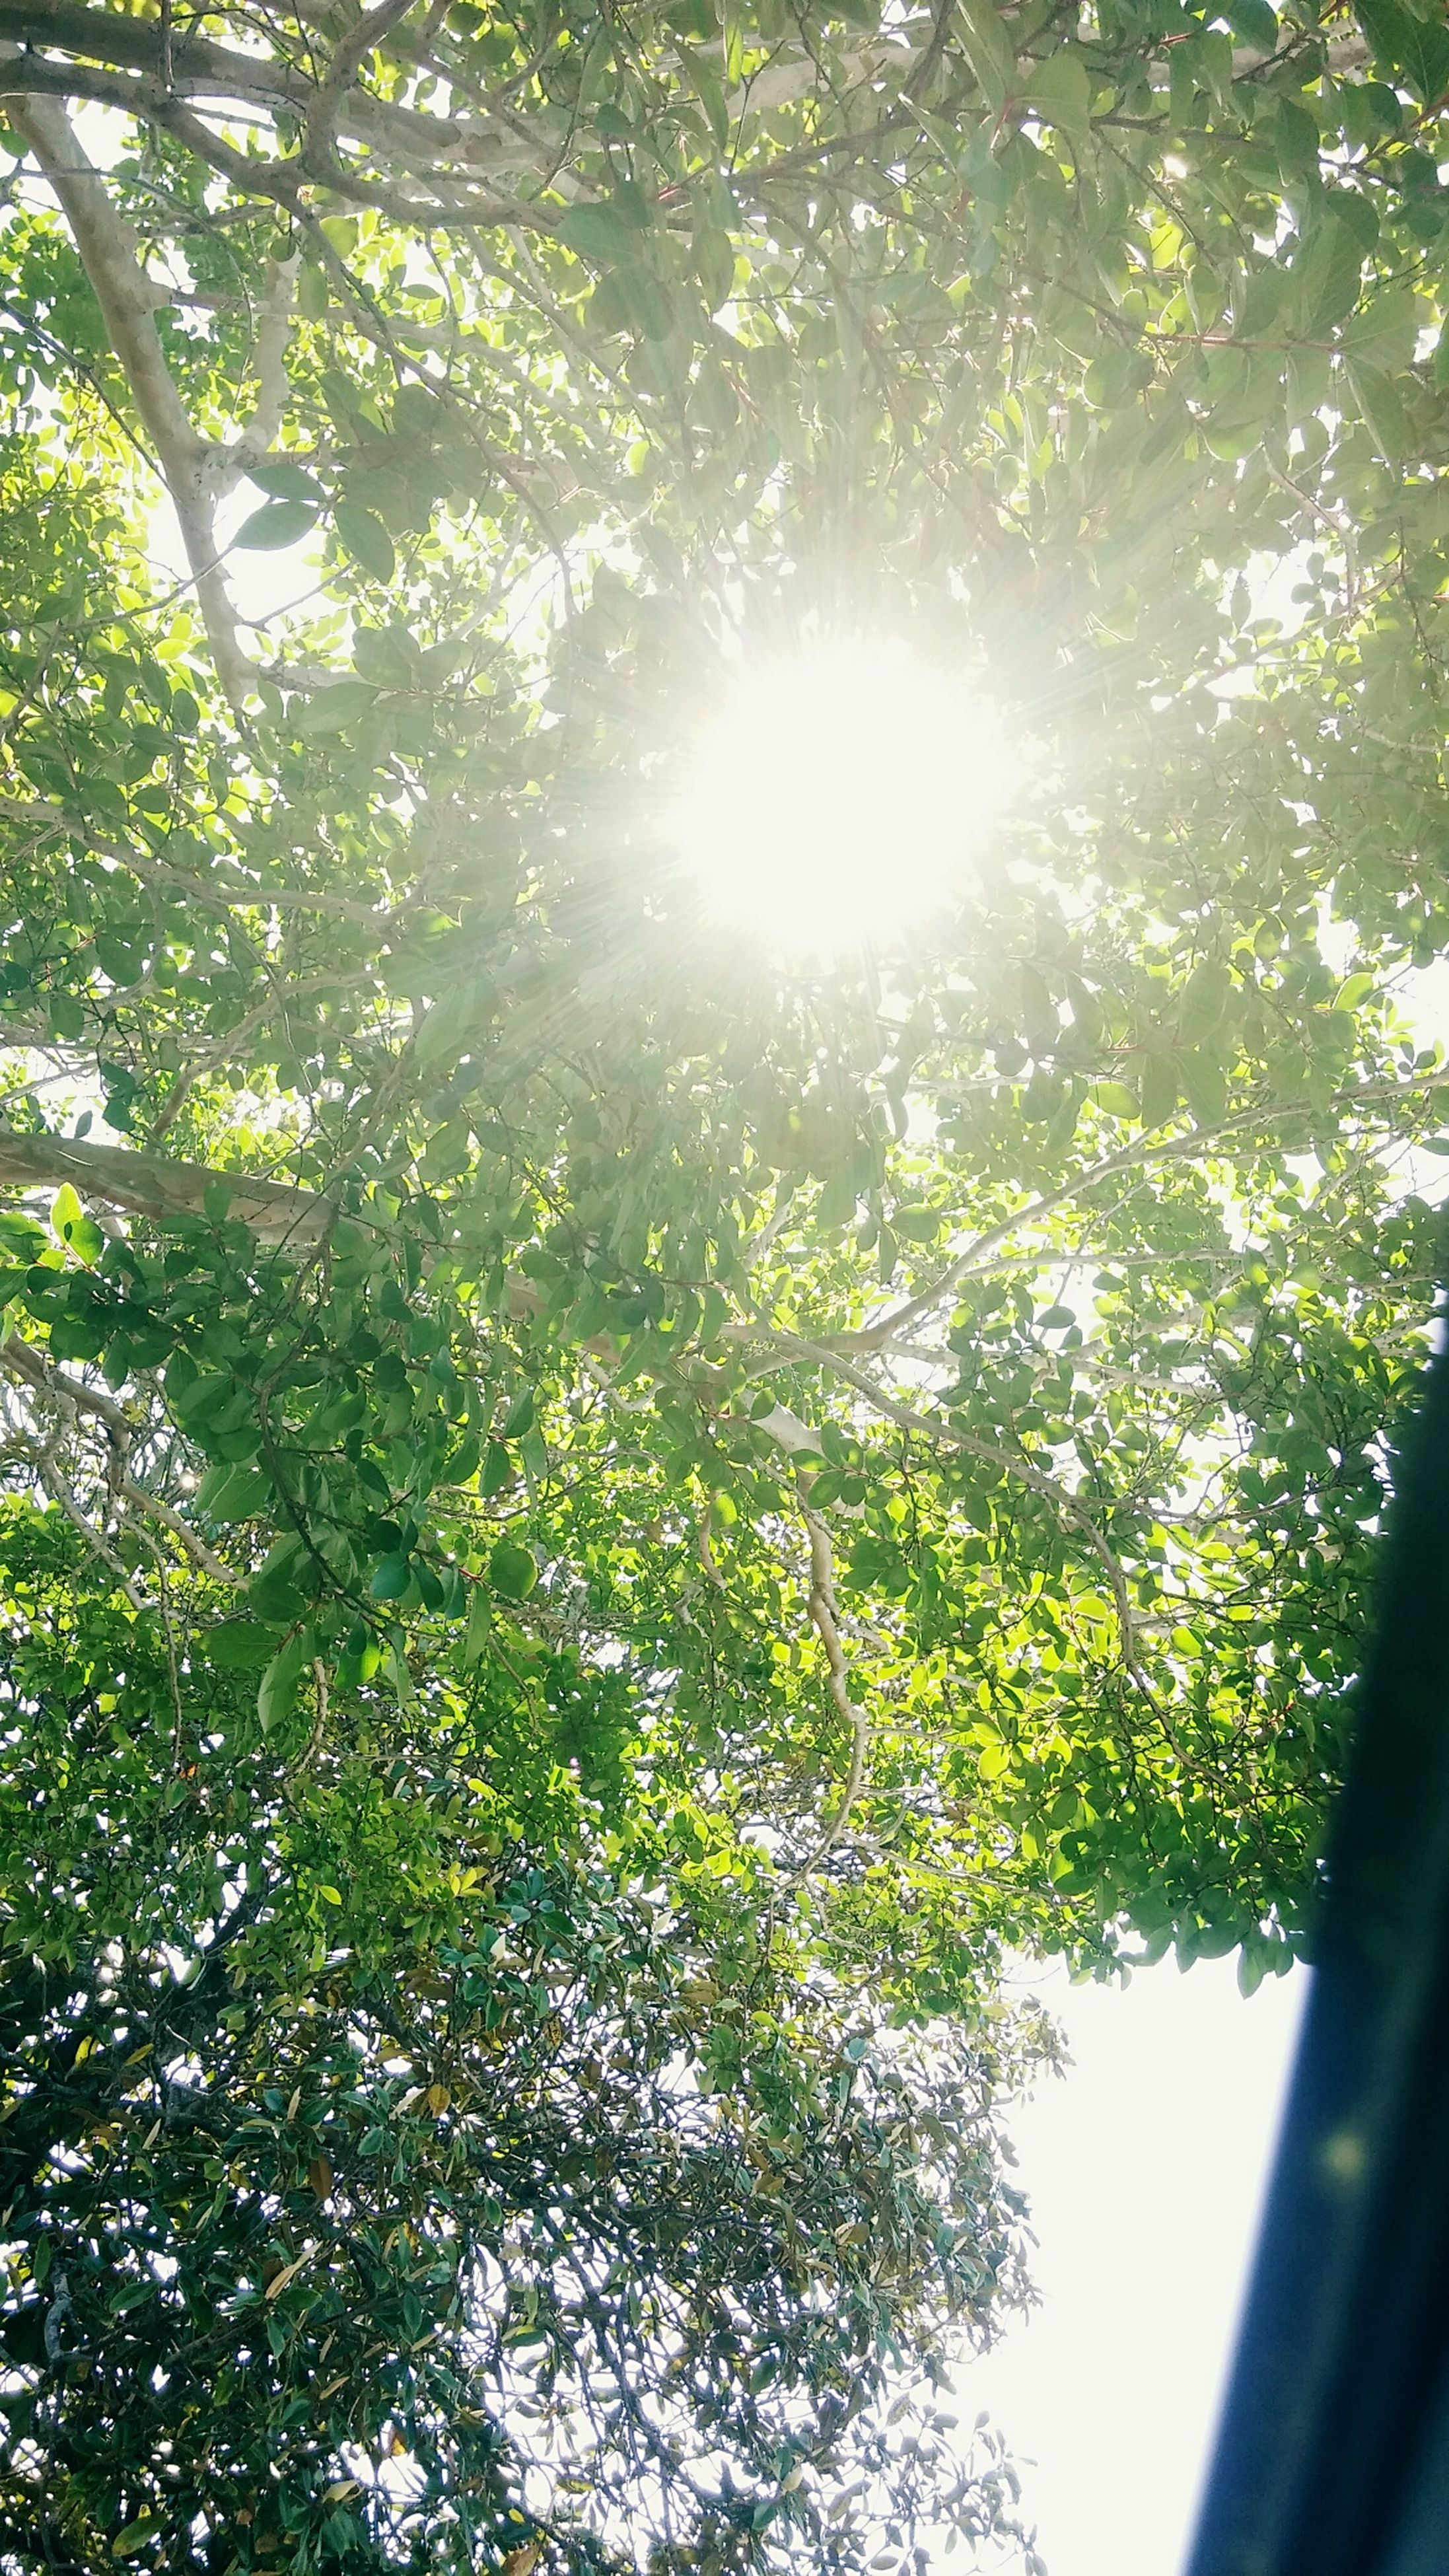 growth, tree, sun, sunlight, sunbeam, nature, green color, beauty in nature, lens flare, branch, sunny, leaf, low angle view, day, plant, tranquility, no people, outdoors, bright, sky